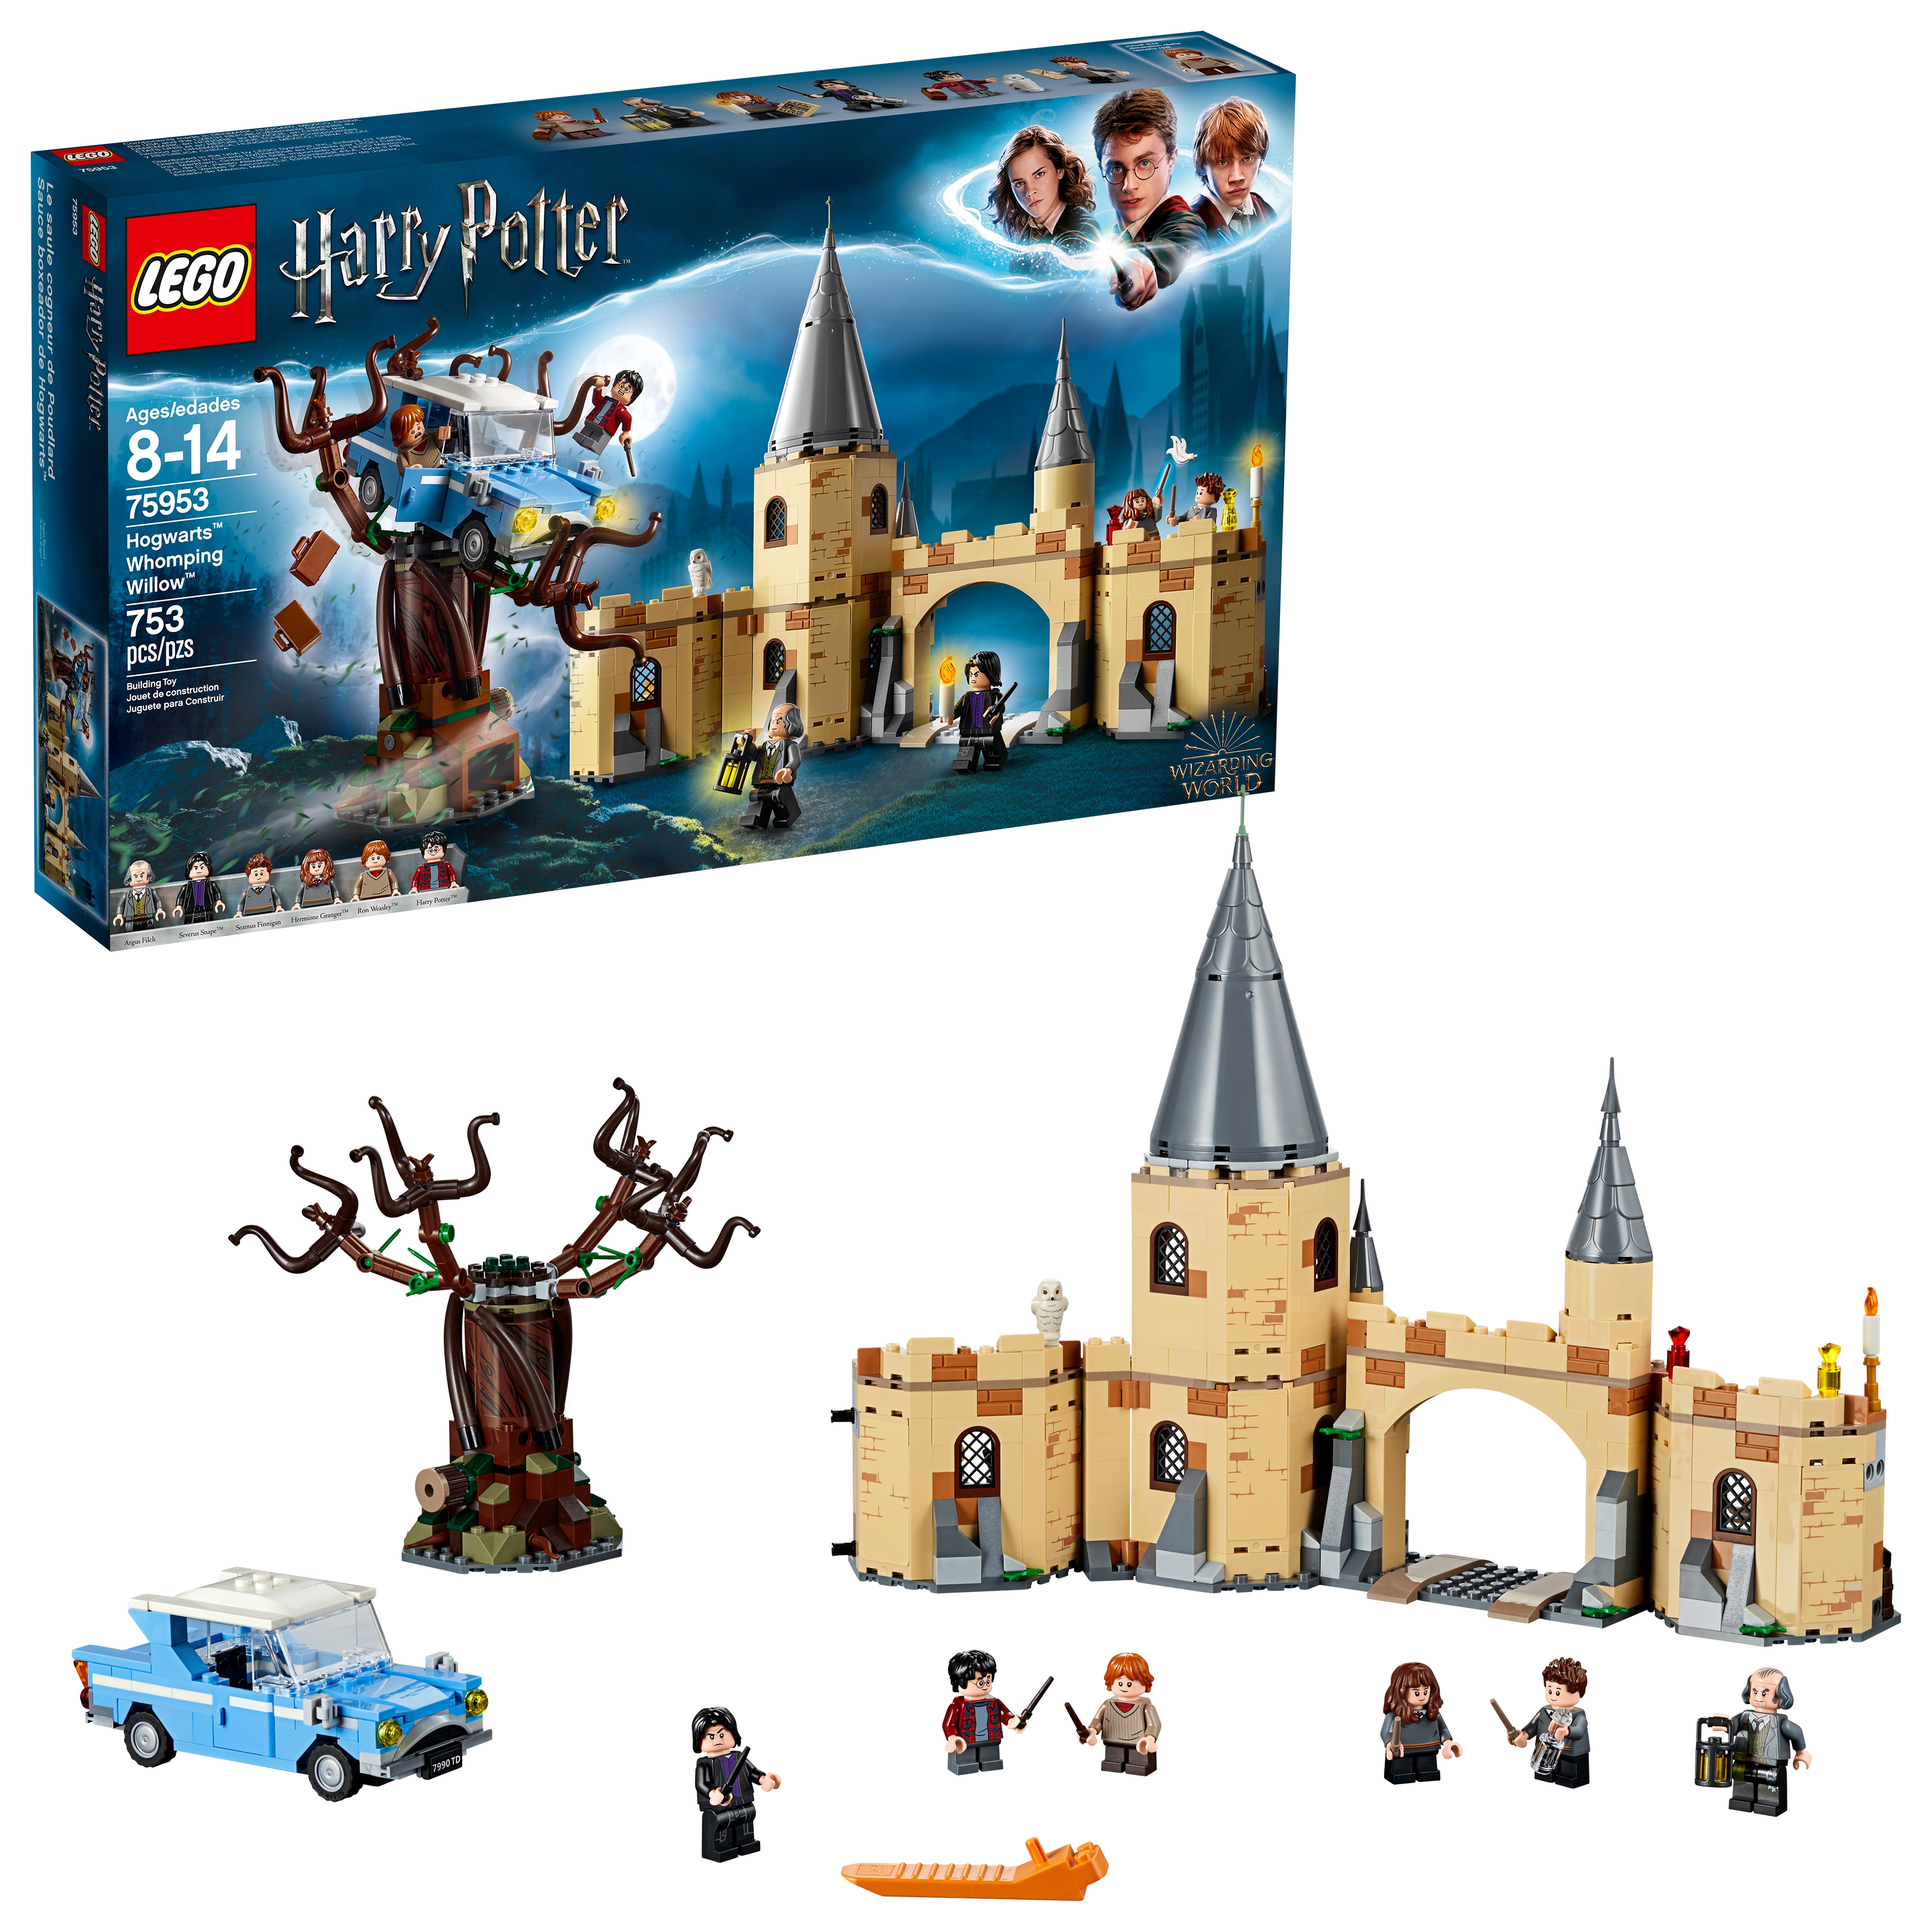 Lego Harry Potter TM Hogwarts Whomping Willow 75953 (753 Pieces)